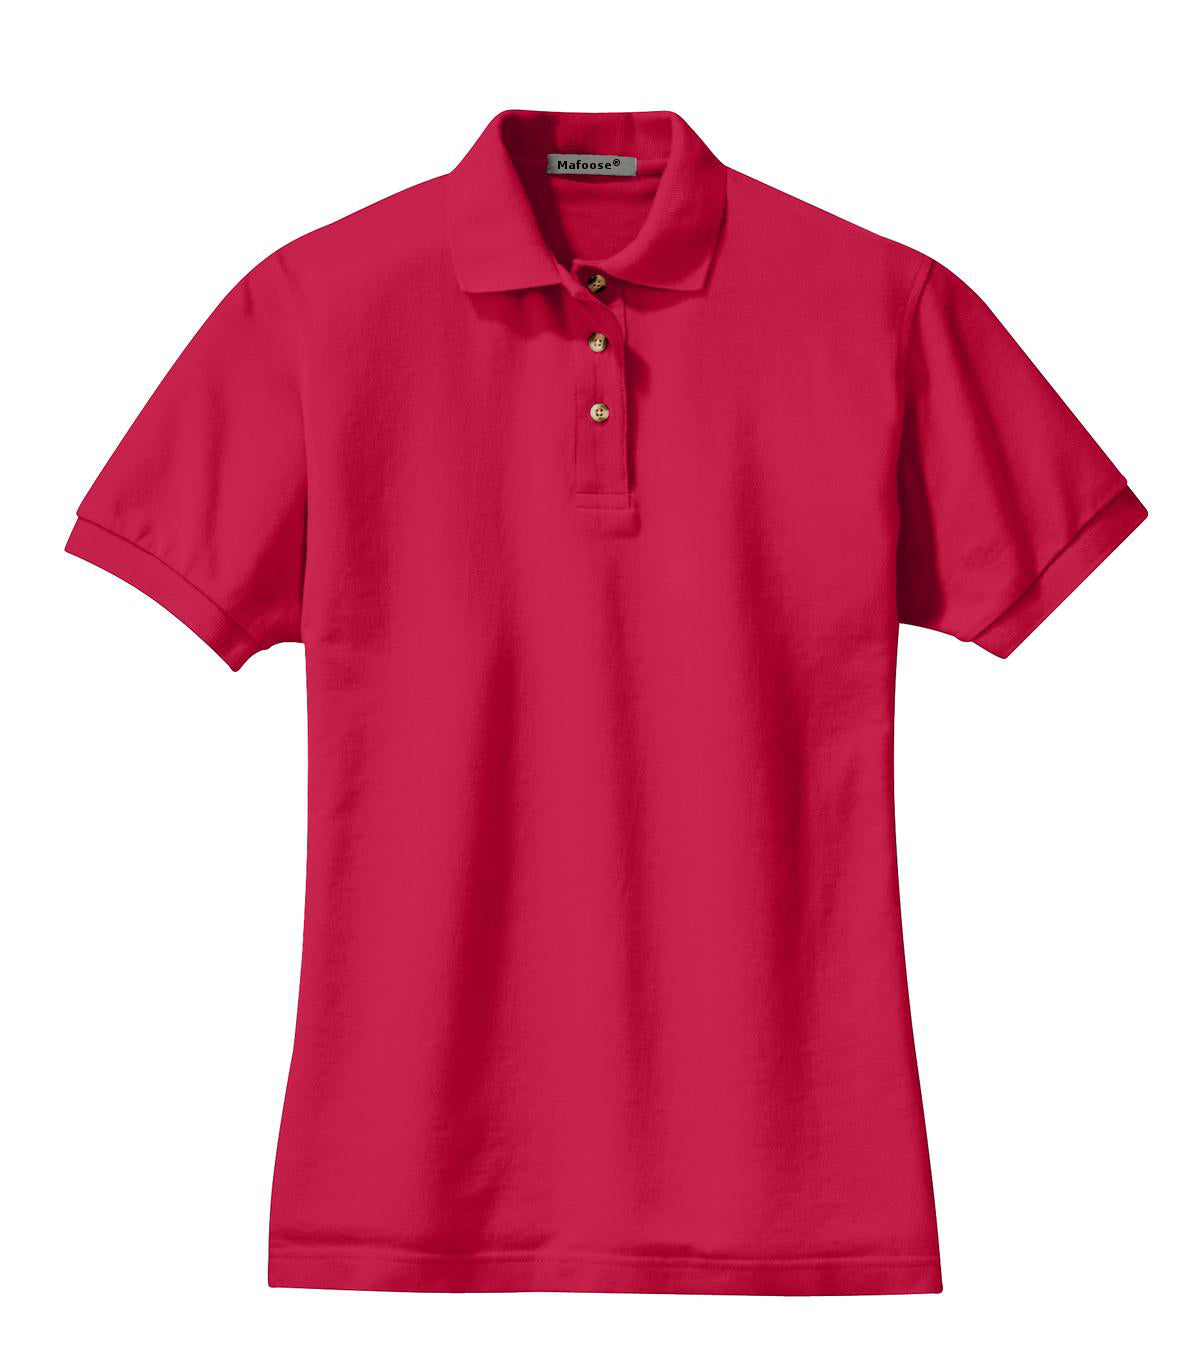 Mafoose Women's Heavyweight Cotton Pique Polo Shirt Red-Front